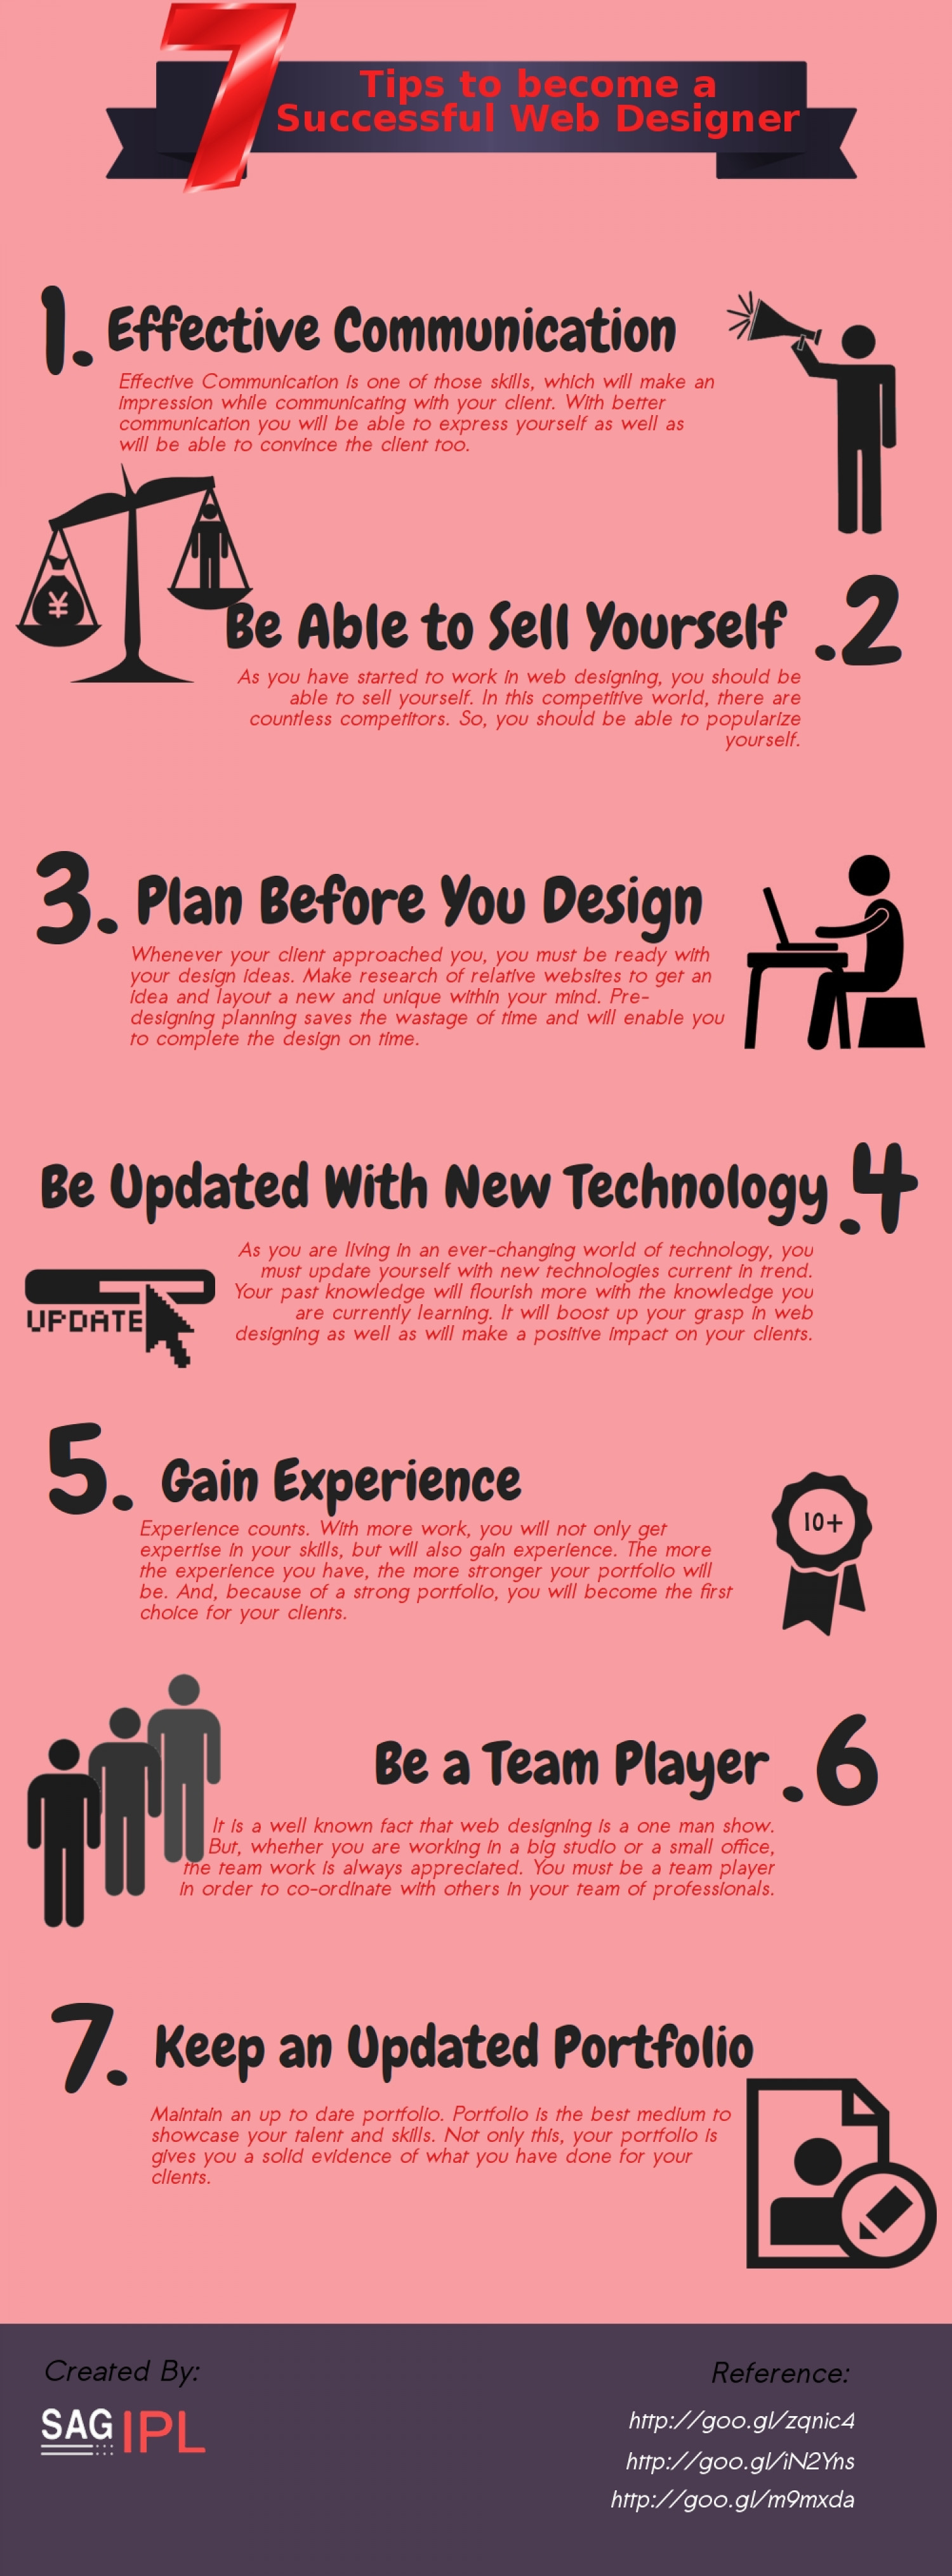 7 Tips to Become A Successful Web Designer  Infographic